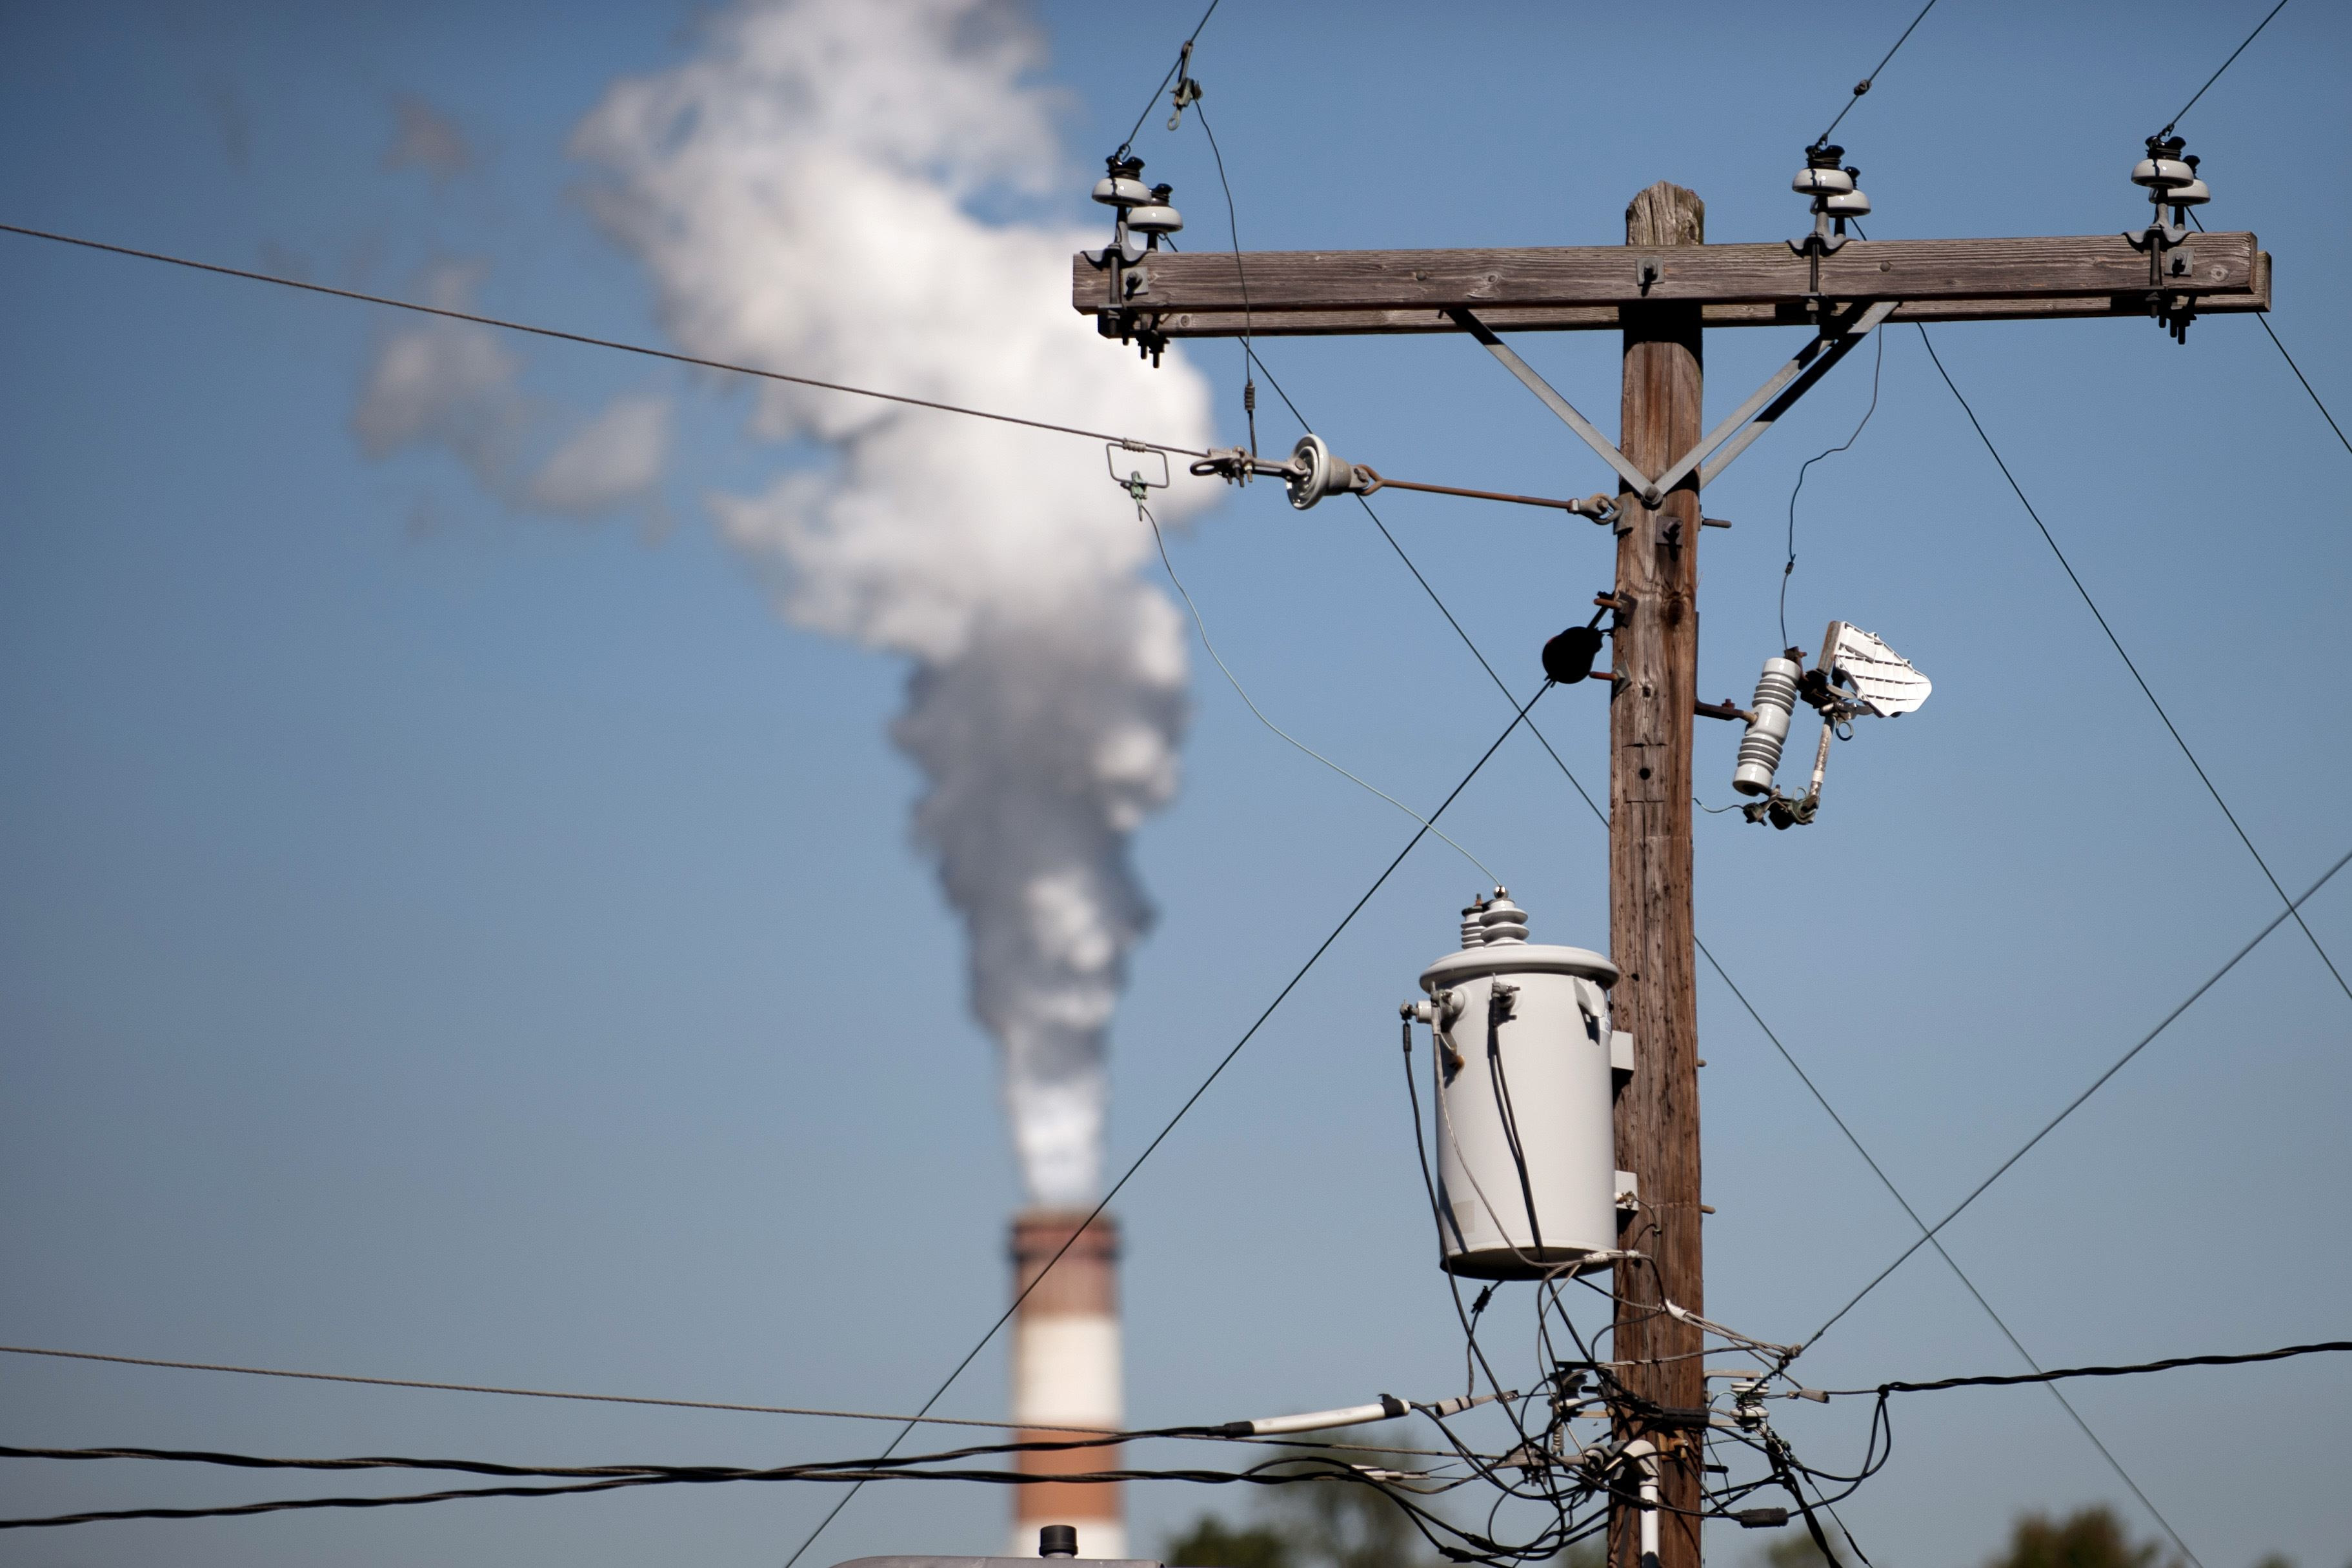 76537459 A plume of exhaust extends from the Mitchell Power Station, a coal-fired power plant in New Eagle, in September 2013. FirstEnergy Corp. closed the plant a month later, citing pressure from low natural gas prices and environmental regulations.